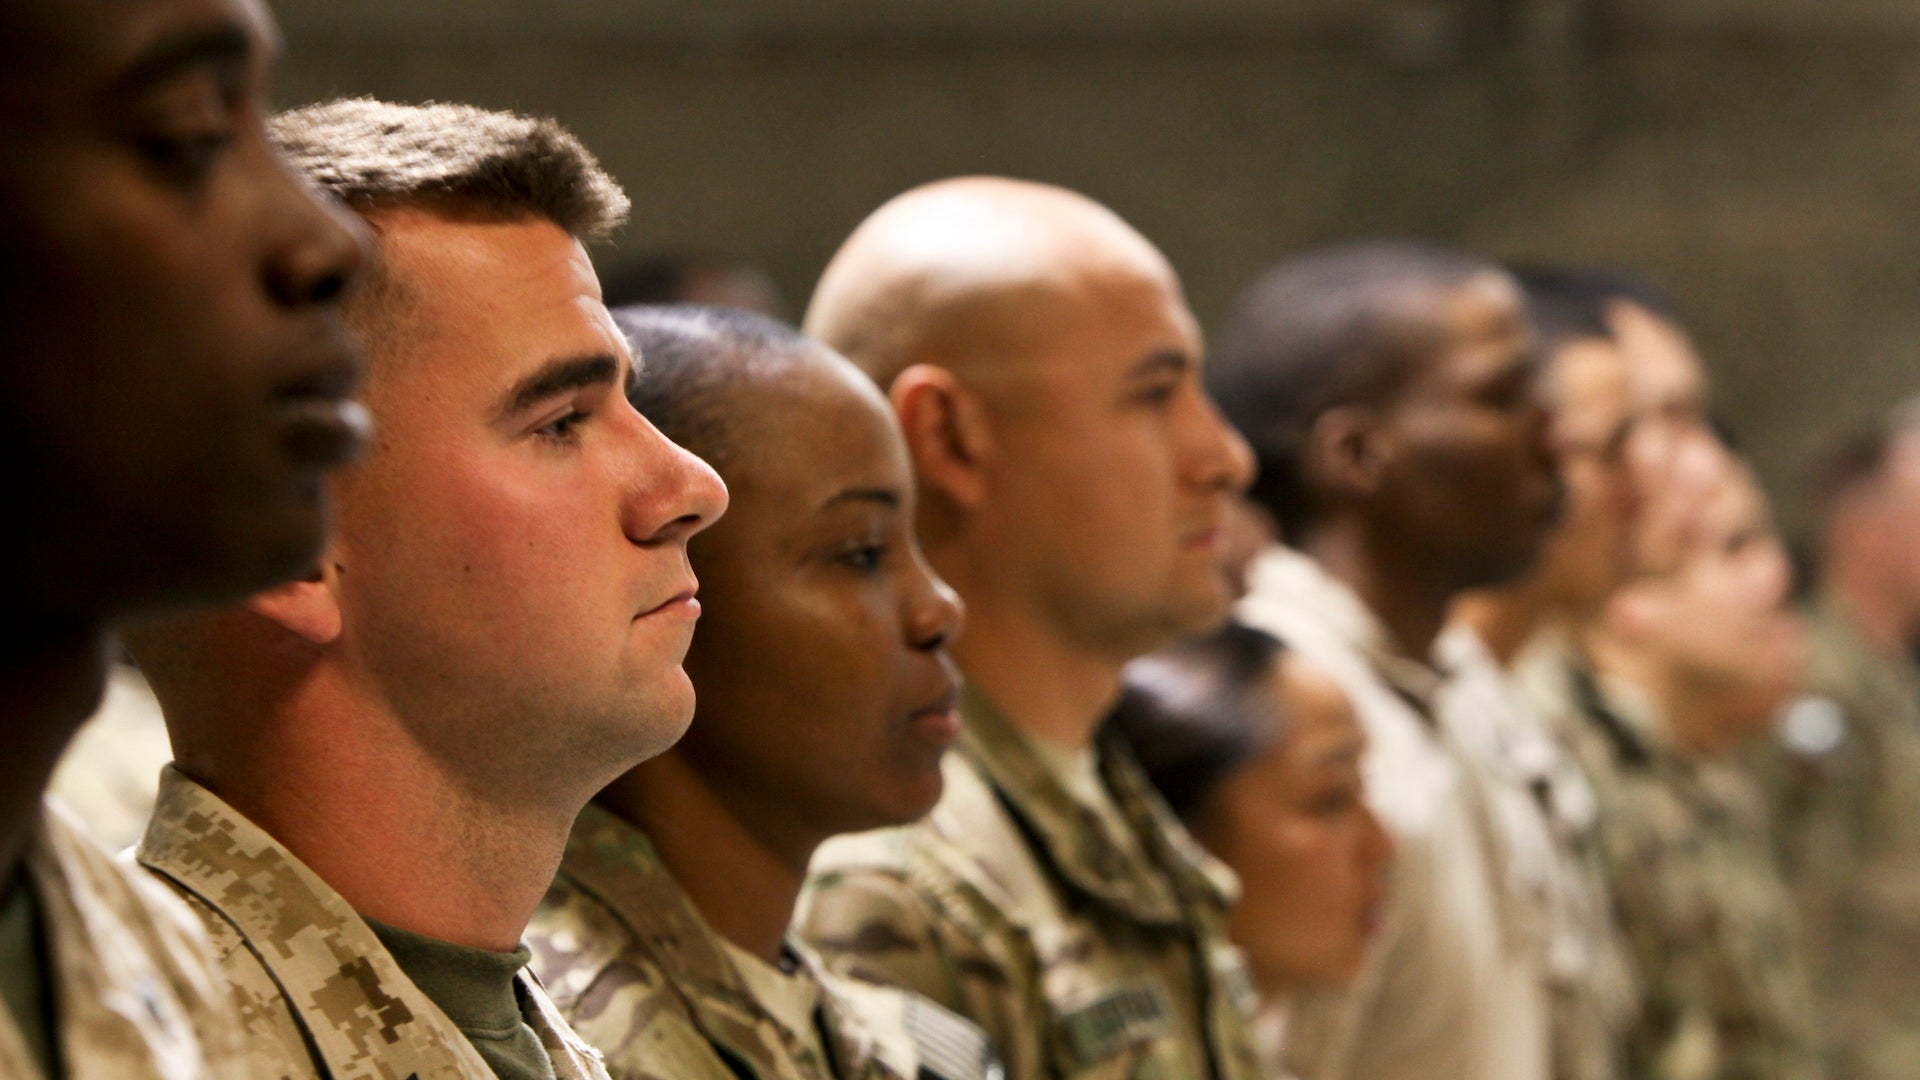 The Pentagon tried to bury an alarming survey about widespread racism in the ranks